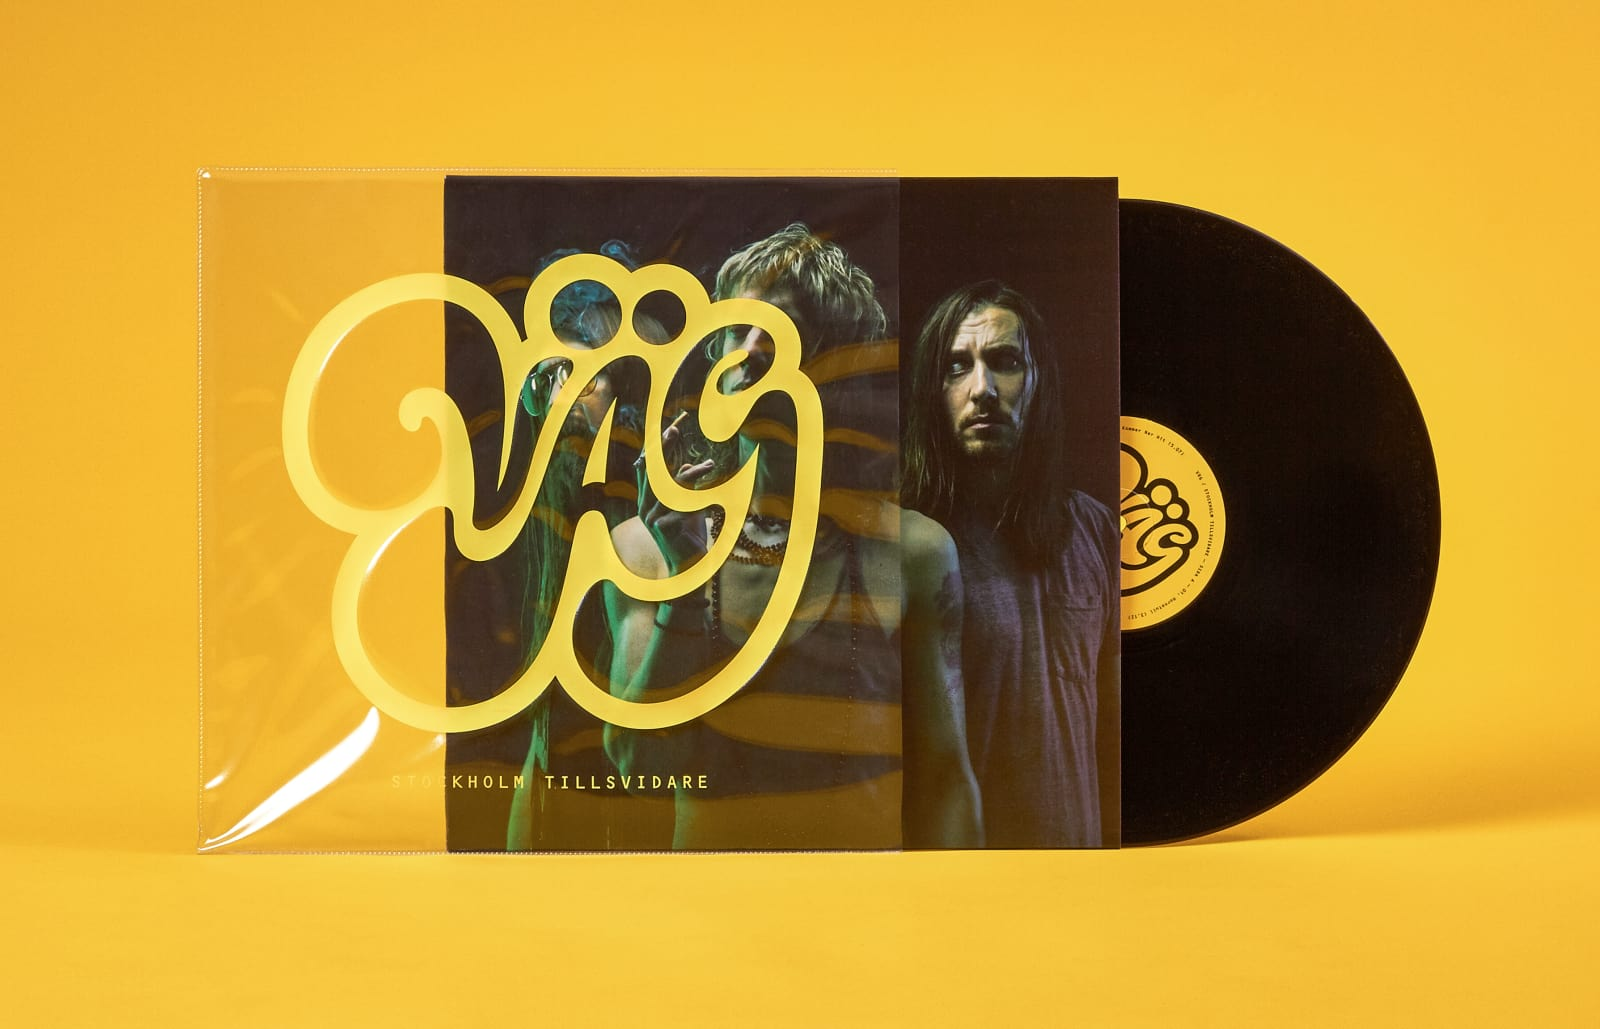 Logotype, identity and album cover for the swedish rock band Väg, formerly known as Road